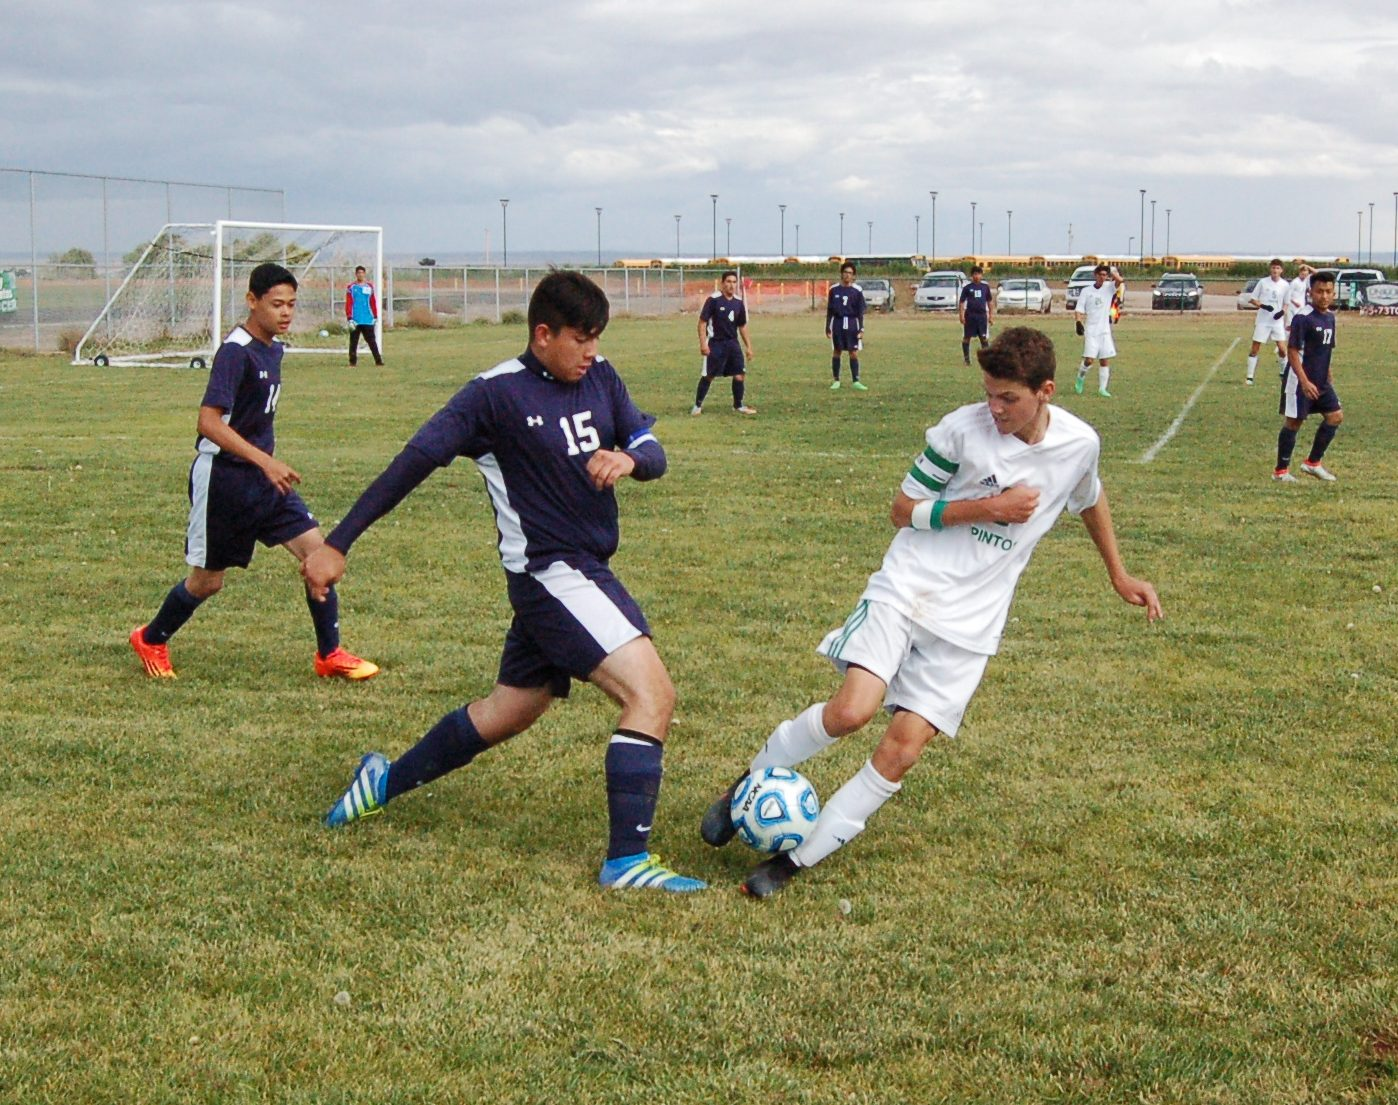 Moriarty's Wyatt Jones trying to win the ball from a Ruidoso defender. Photo by G. Demarest.